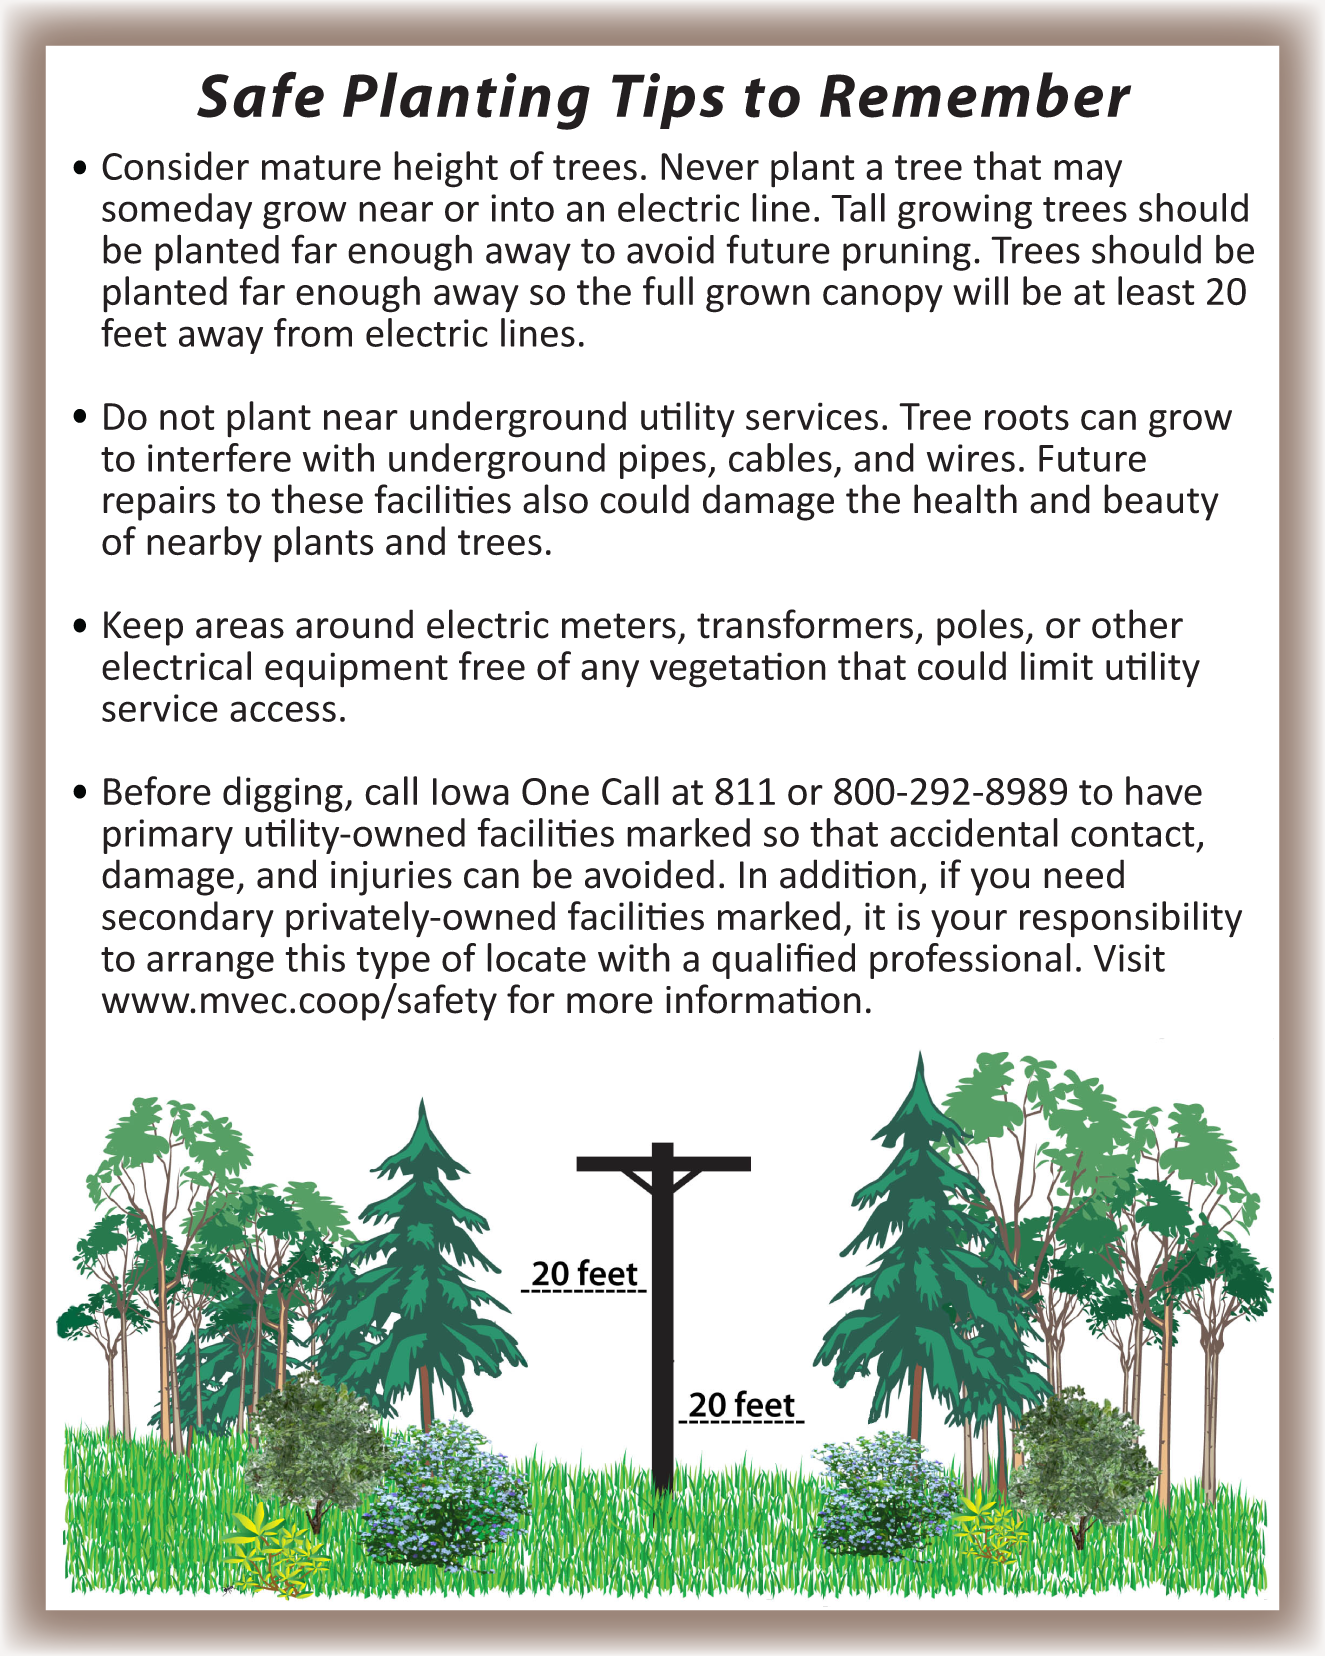 tree_planting_tips2.png